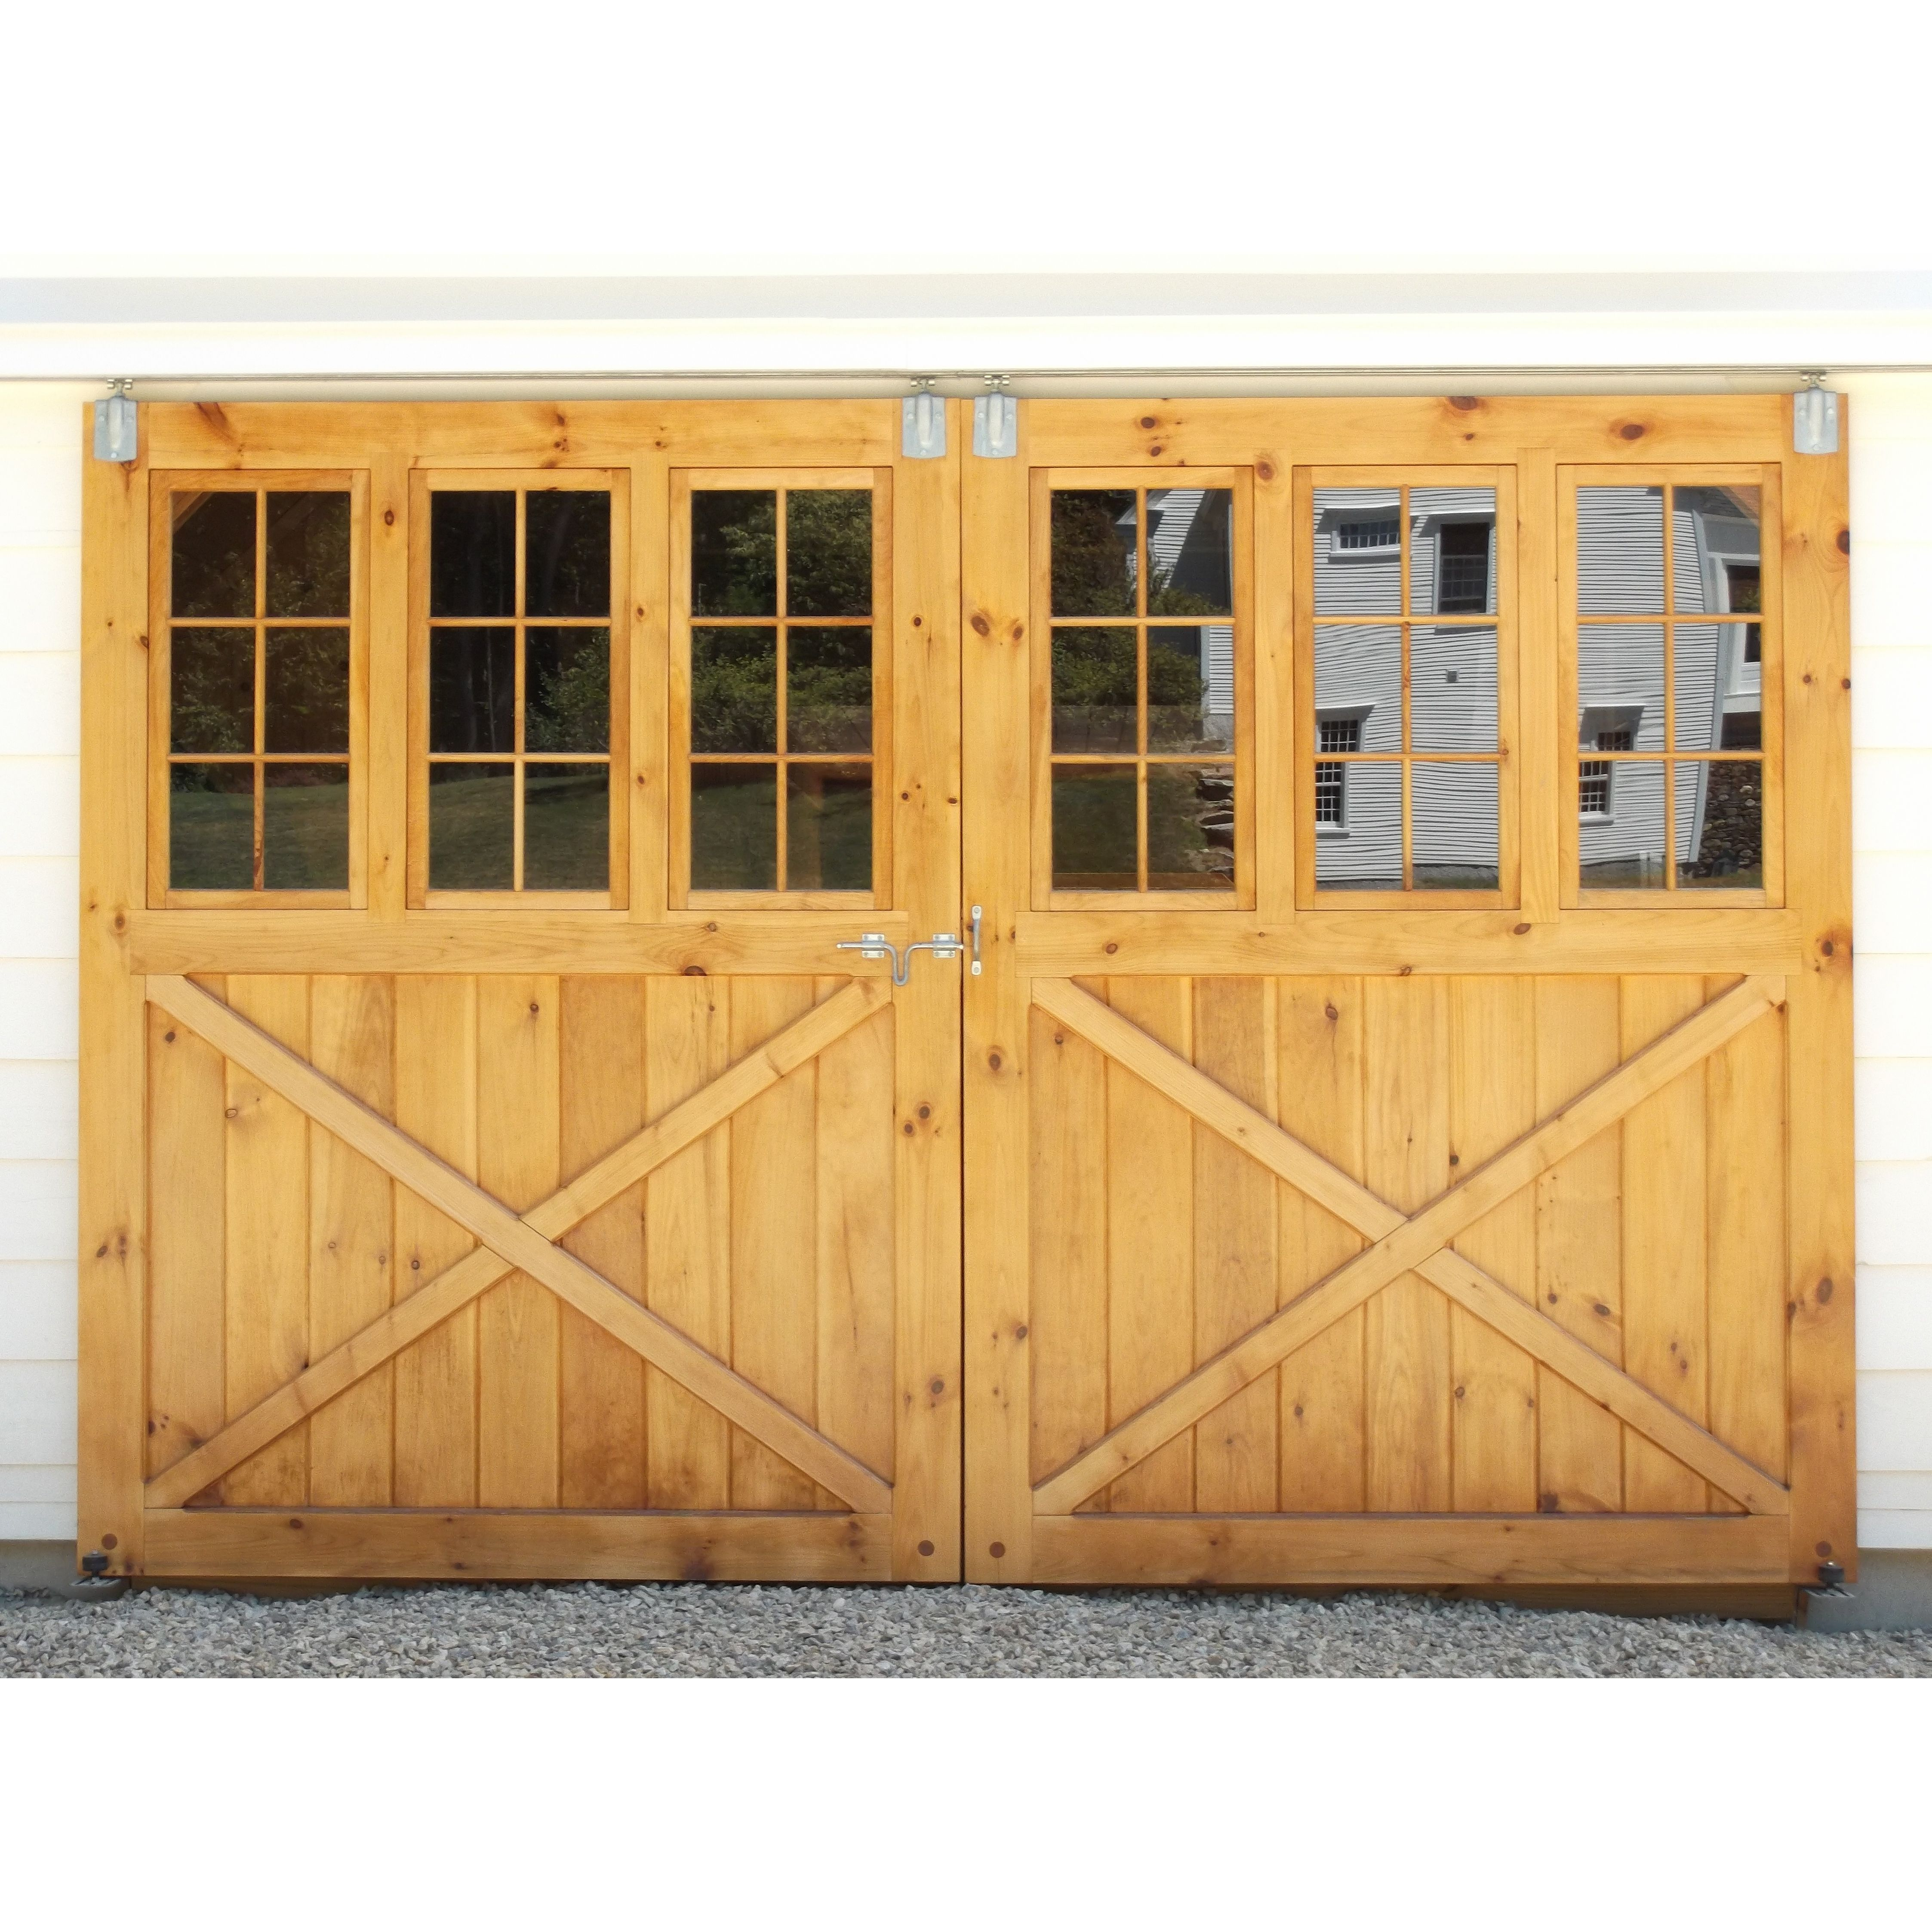 Exterior Sliding Barn Doors With Windows Barn Doors Are Not Any Longer Limited To Just Exterior Barn Doors Exterior Sliding Barn Doors Exterior Door Designs